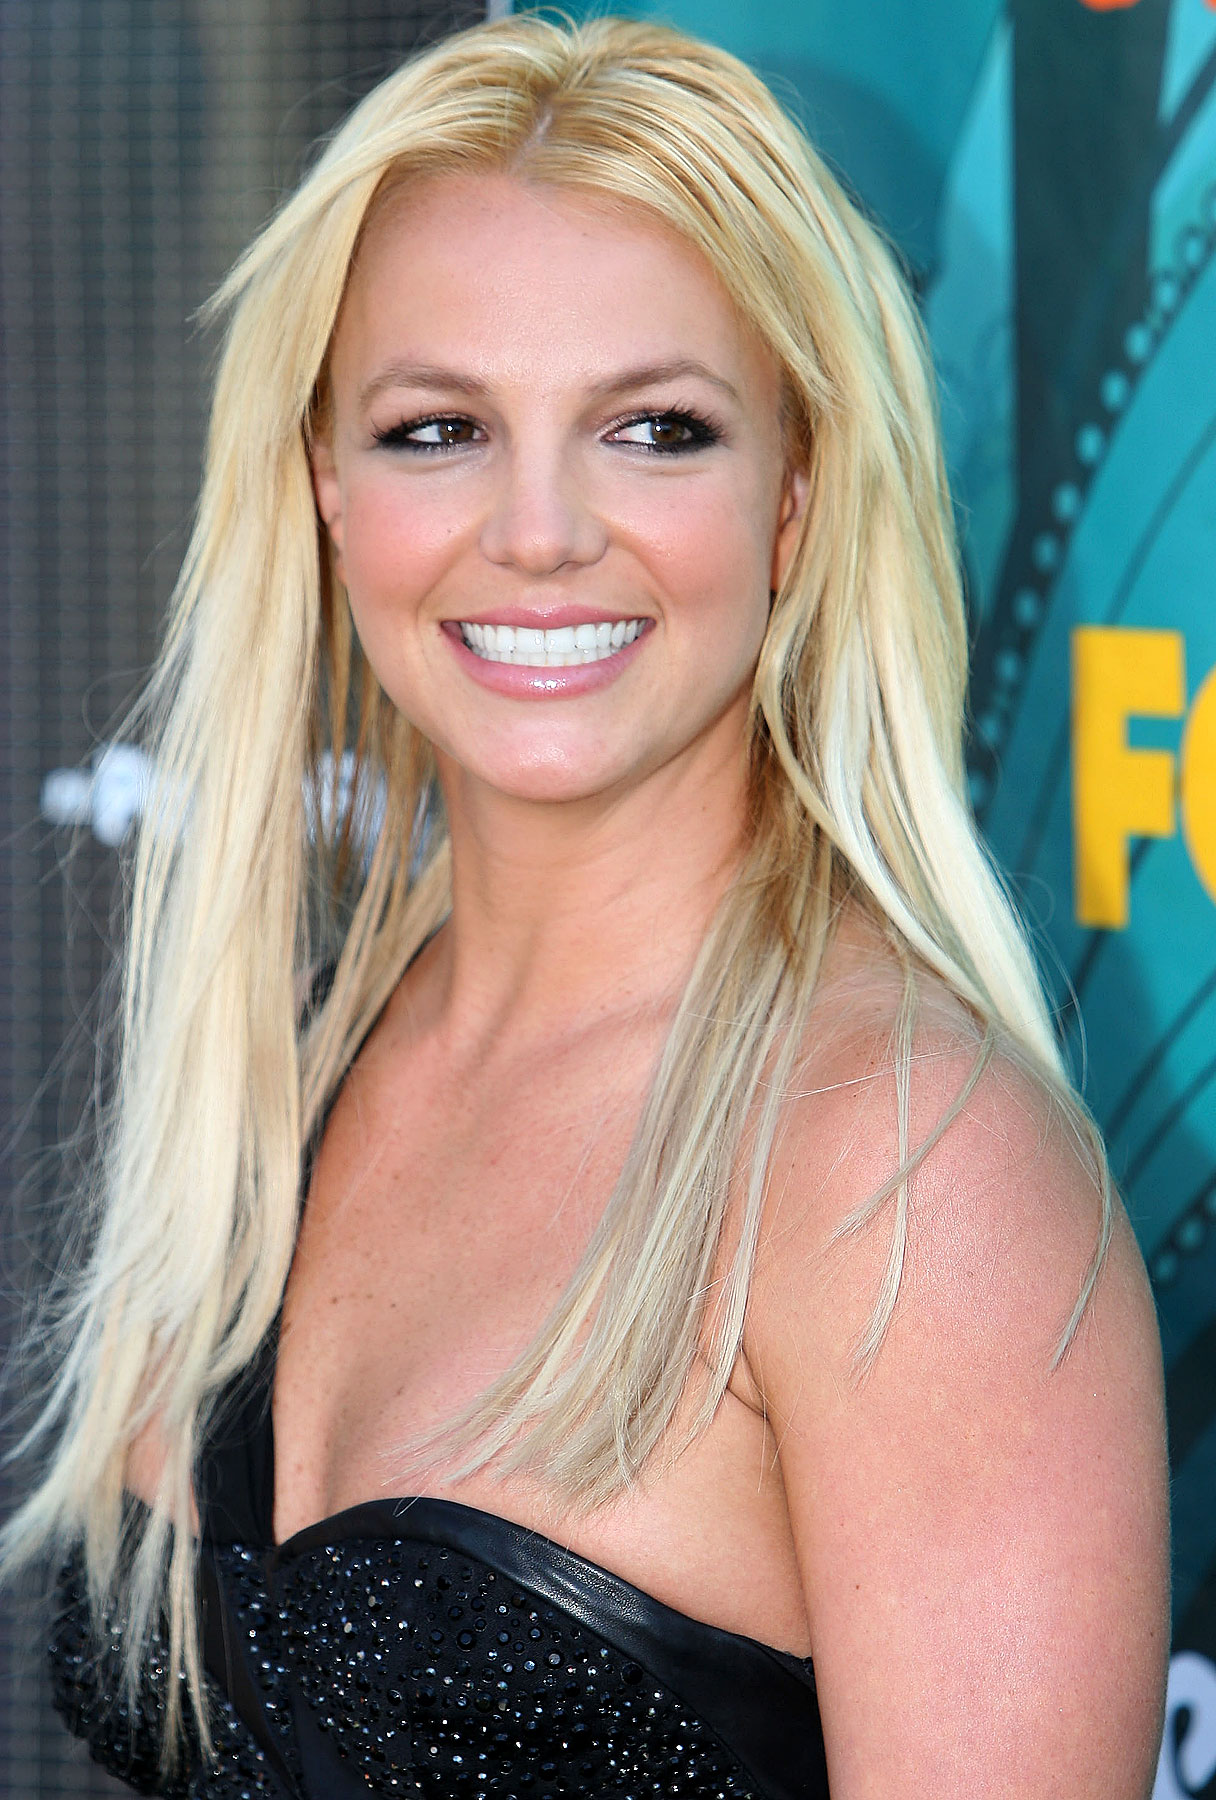 Britney Spears Settles in Paparazzi Foot-Squishing Case